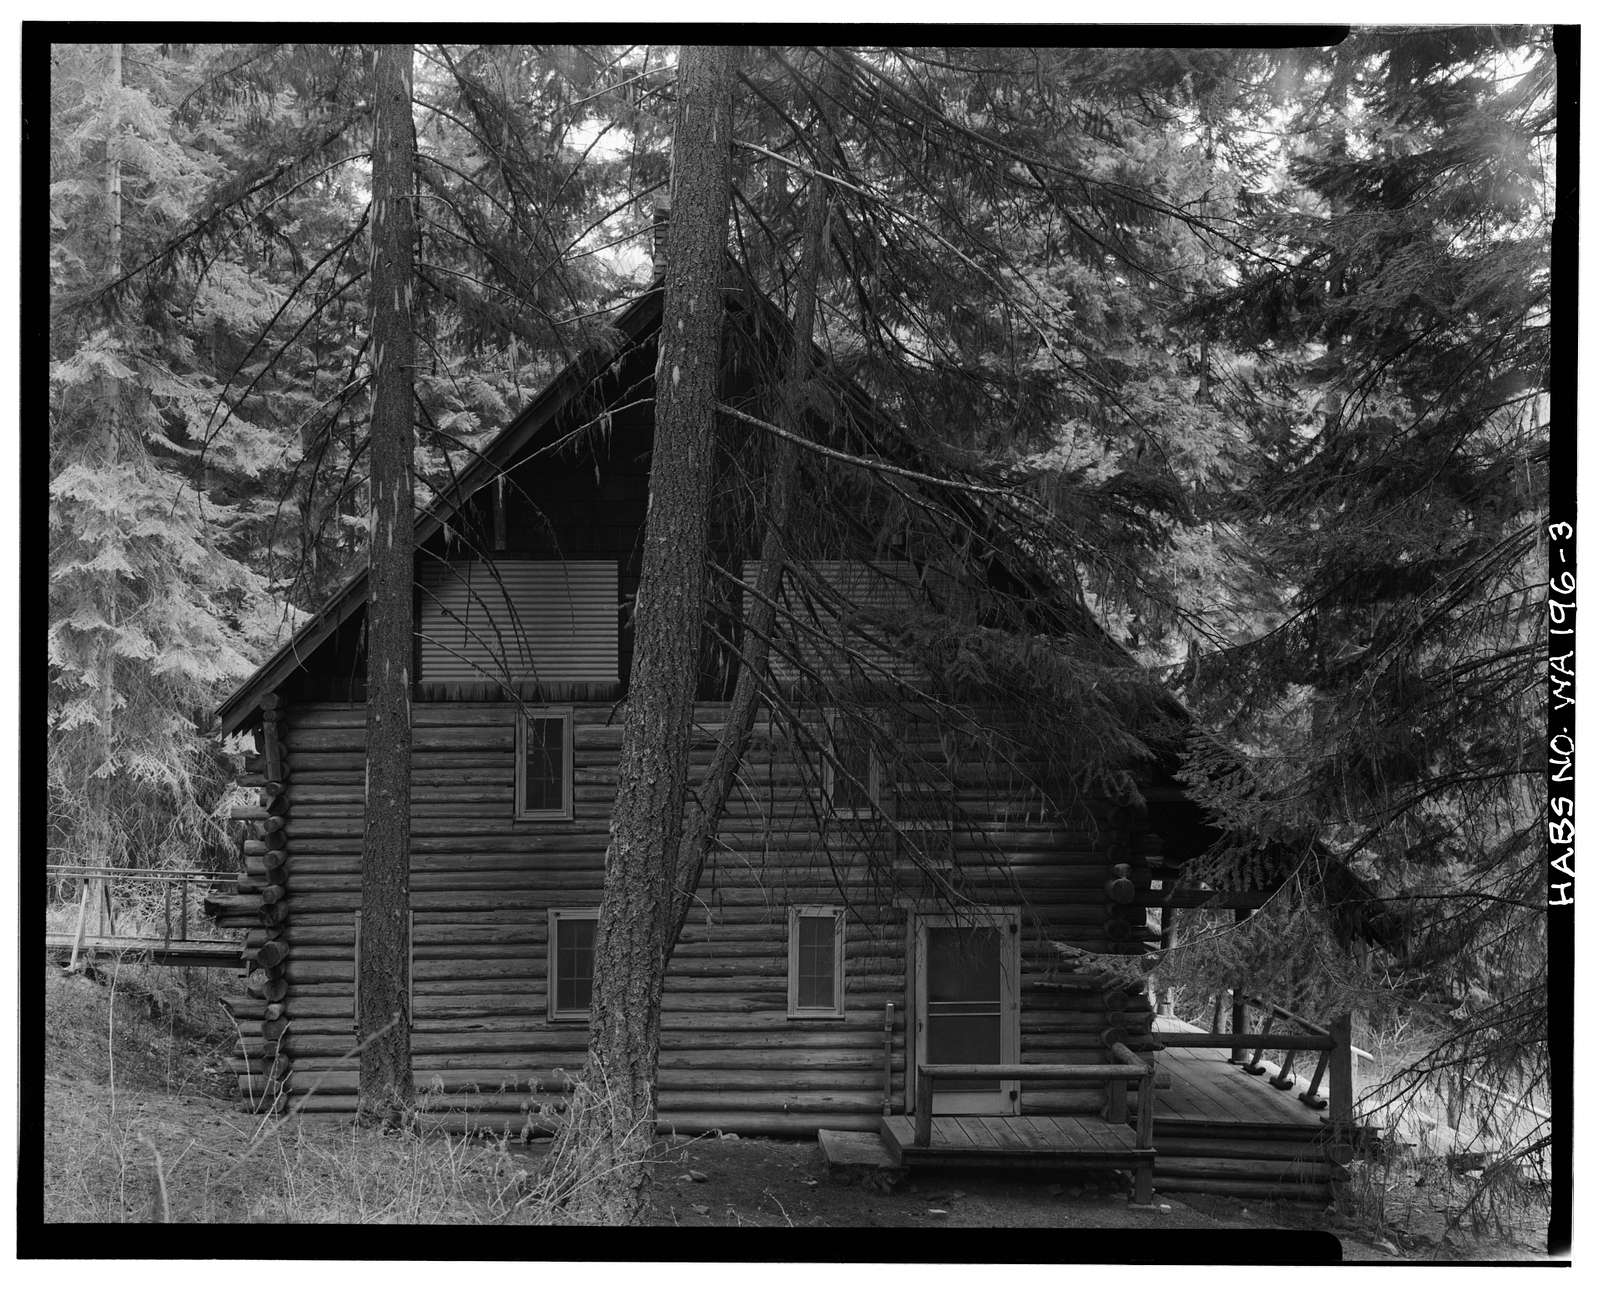 Kiwanis Lodge, 3200 Old River Road, Camp Roganunda, Naches, Yakima County, WA